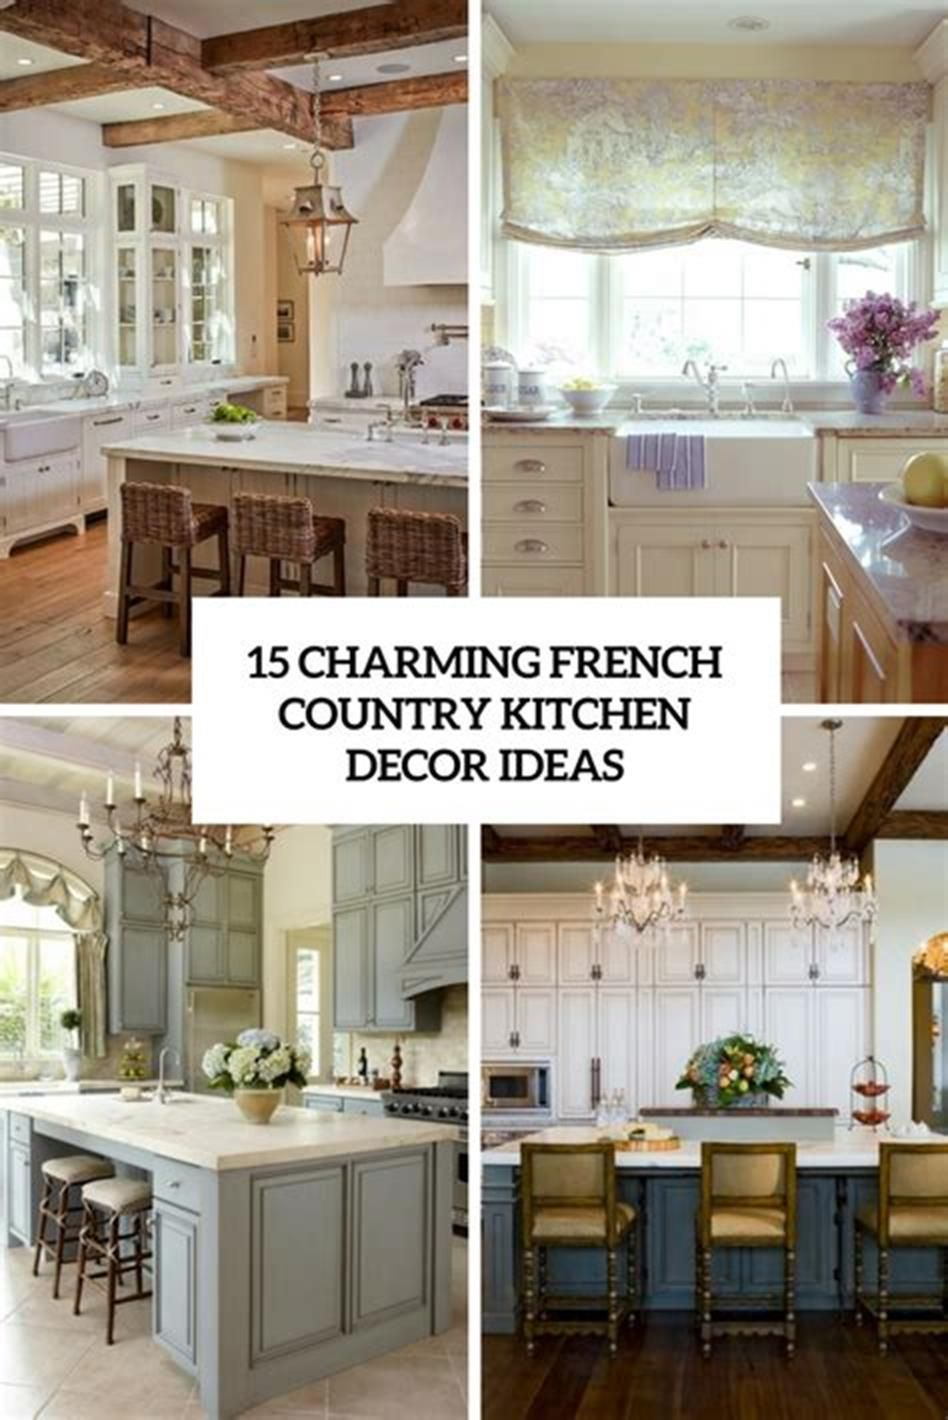 37 Inspiring Country Kitchen Decorating Ideas Craft Home Ideas Country Kitchen Farmhouse Kitchen Decor Country Kitchen Wall Decor